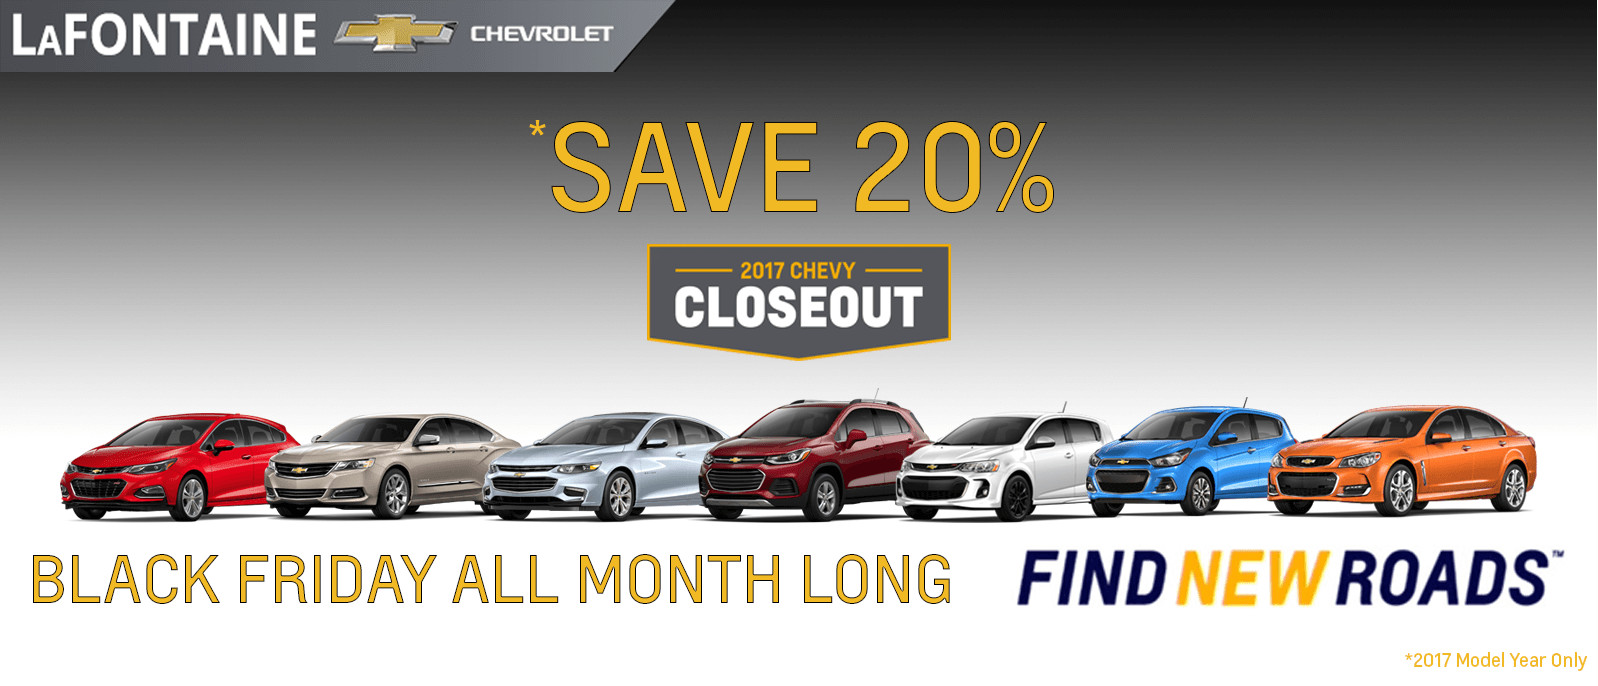 Save 20% On These Remaining 2017's - LaFontaine Chevy